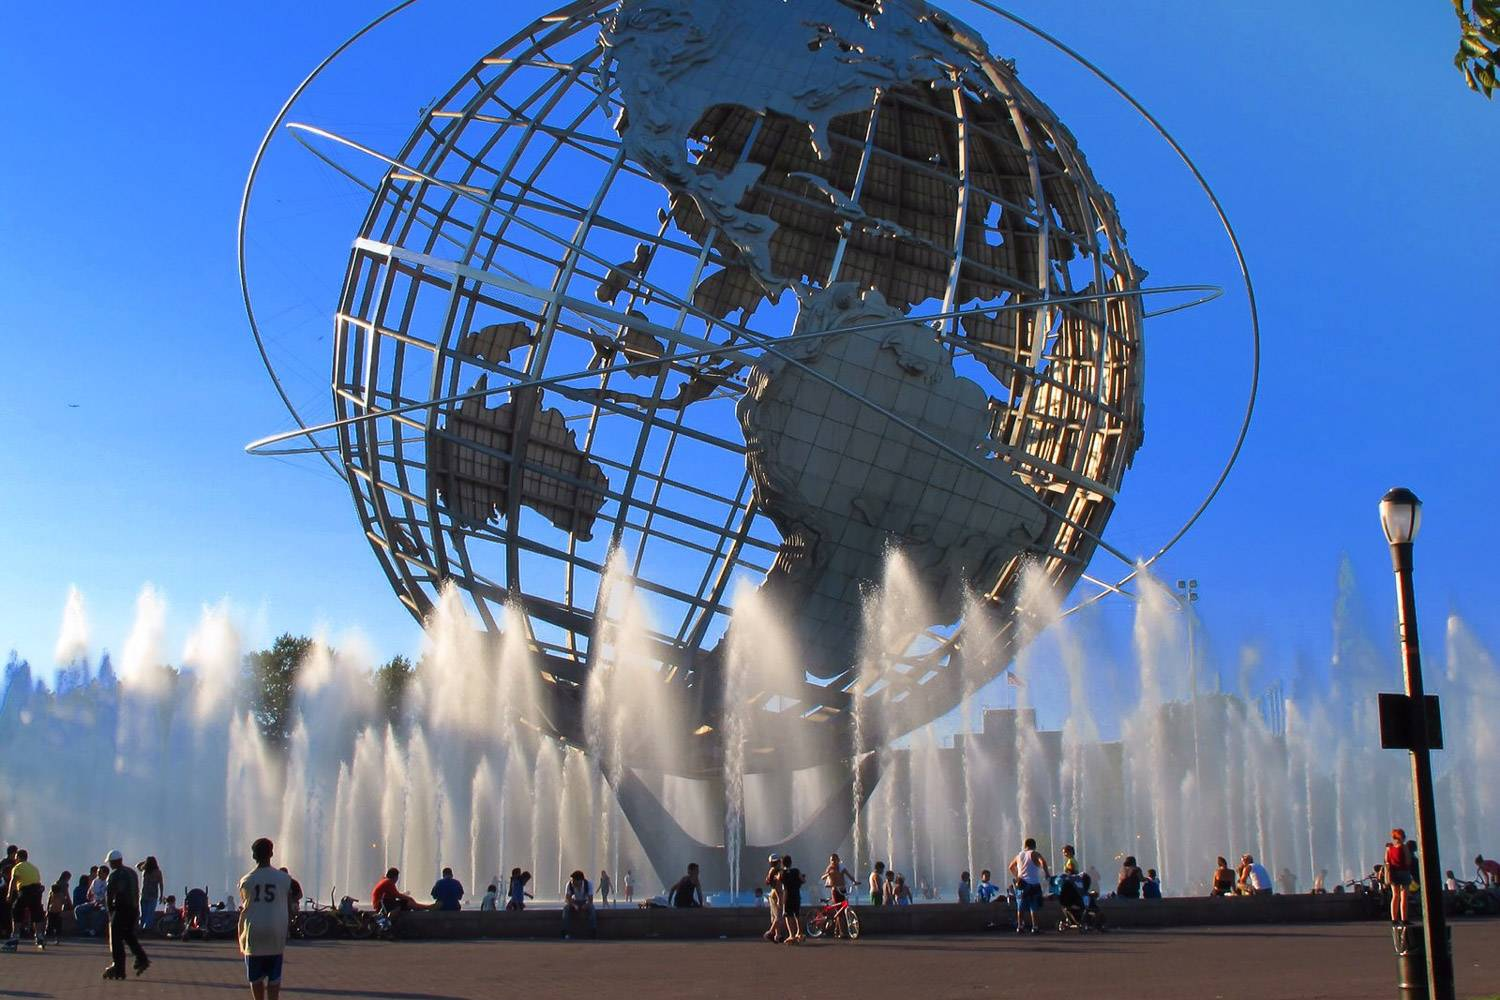 Image des fontaines autour du globe terrestre à Flushing Meadows Park dans le Queens (Crédit photo : Chun Yip So CC BY 2.0)